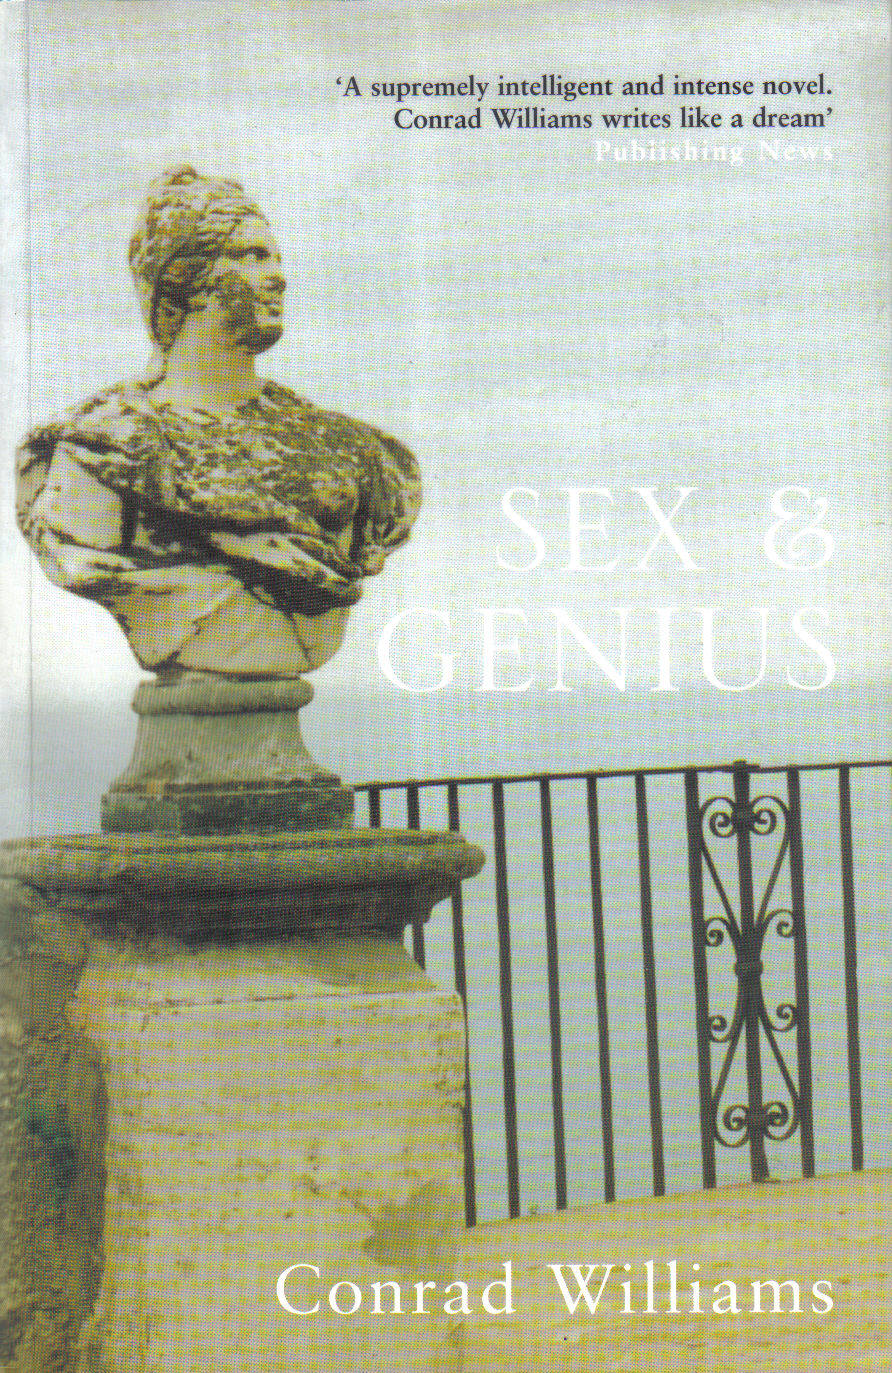 SEX AND GENIUS  Literary, 320 pages Bloomsbury, 2003  James Hilldyard is a legendary novelist living in seclusion on the Amalfi Coast. Michael Lear is a documentary producer on a pilgrimate to meet him. When Hilldyard unexpectedly asks Michael to stay on as his companion, the younger man cannot refuse. But Michael's idyllic break is shattered when Adela Fairfax arrives. The captivating actress is determined to secure film rihts in a Hilldyard novel, and believes only Michael can help her. What ensues is a titanic struggle between the Hollywood system at full throttle and the will of a genius – with devastating consequences.   'A supremely intelligent and intense novel. Conrad Williams writes like a dream.' – Publishing News  'This novel is a gripping piece of work, written with style and panache.' – Sunday Telegraph